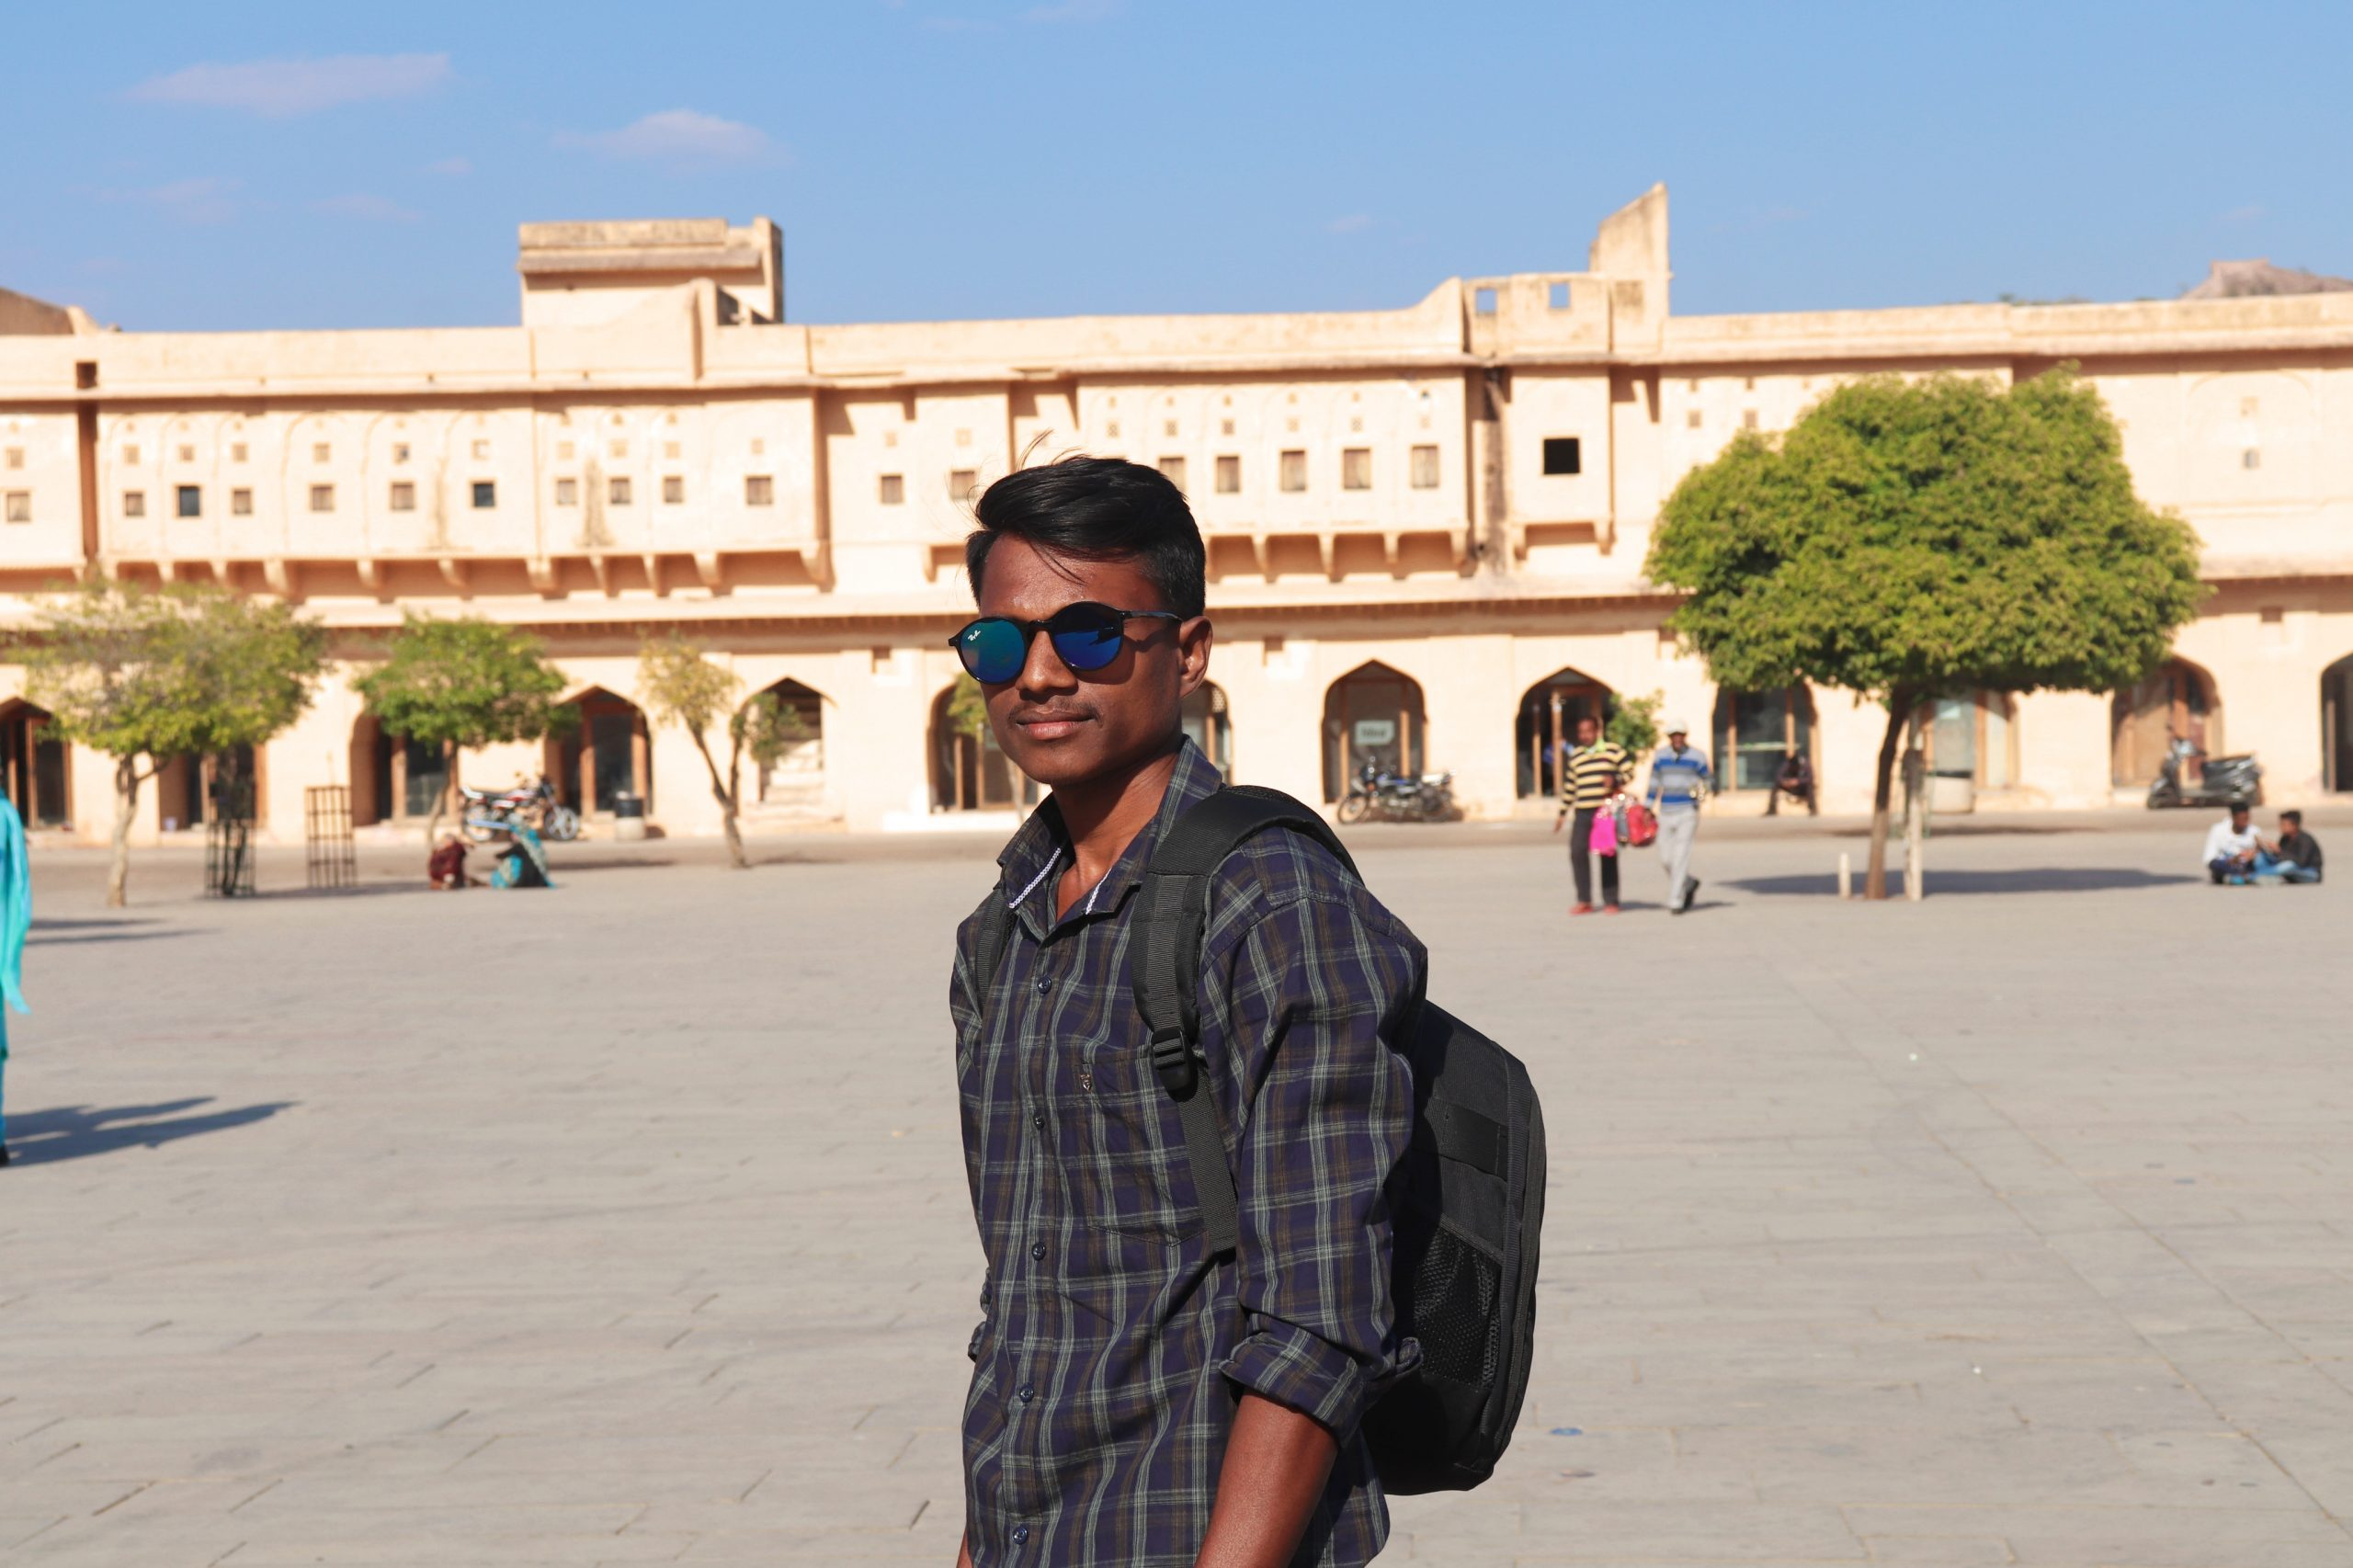 Boy posing in front of fort